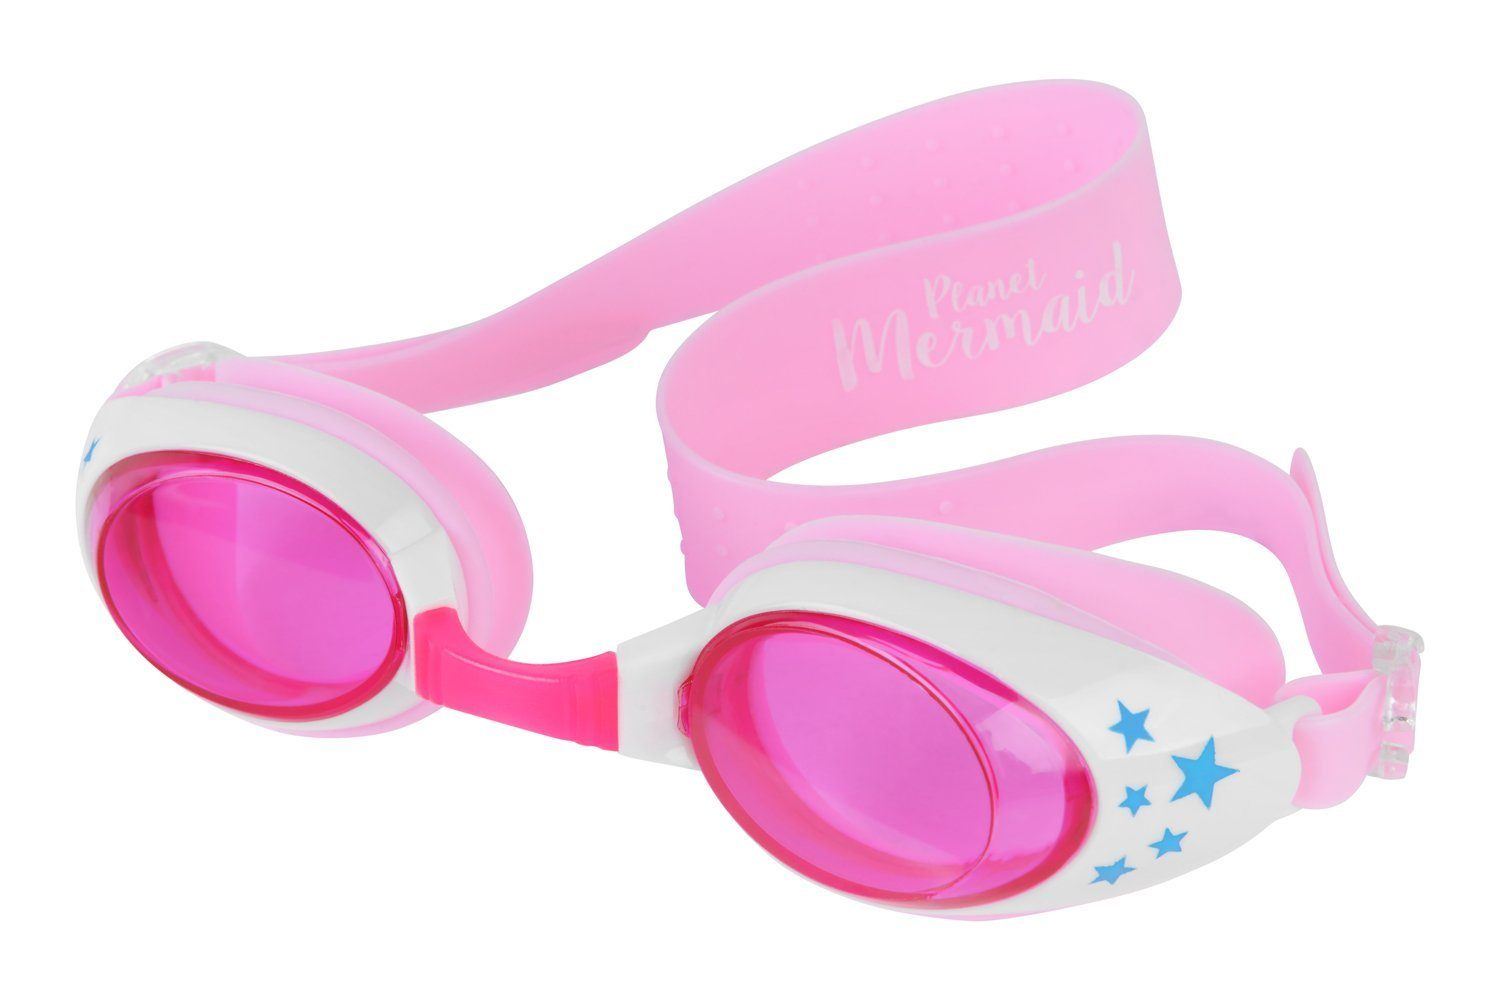 Mermaid Goggles in Pink from Planet Mermaid